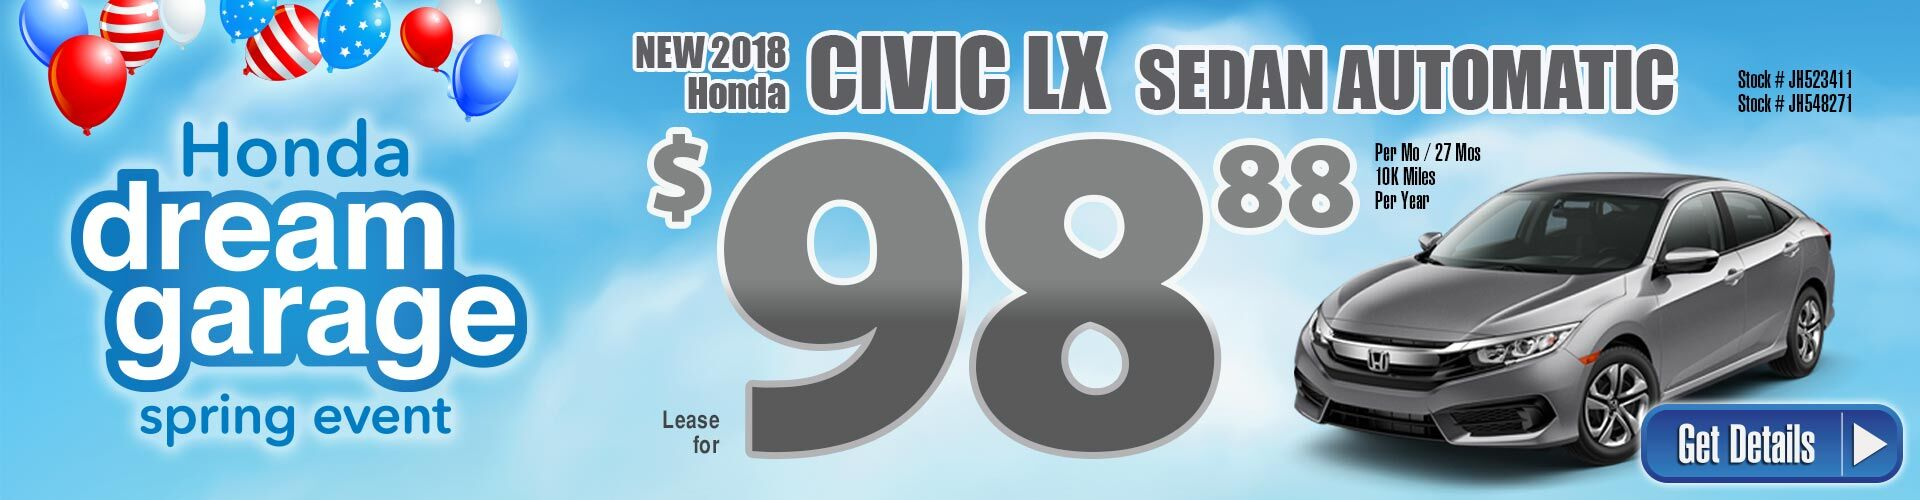 18 civic lease